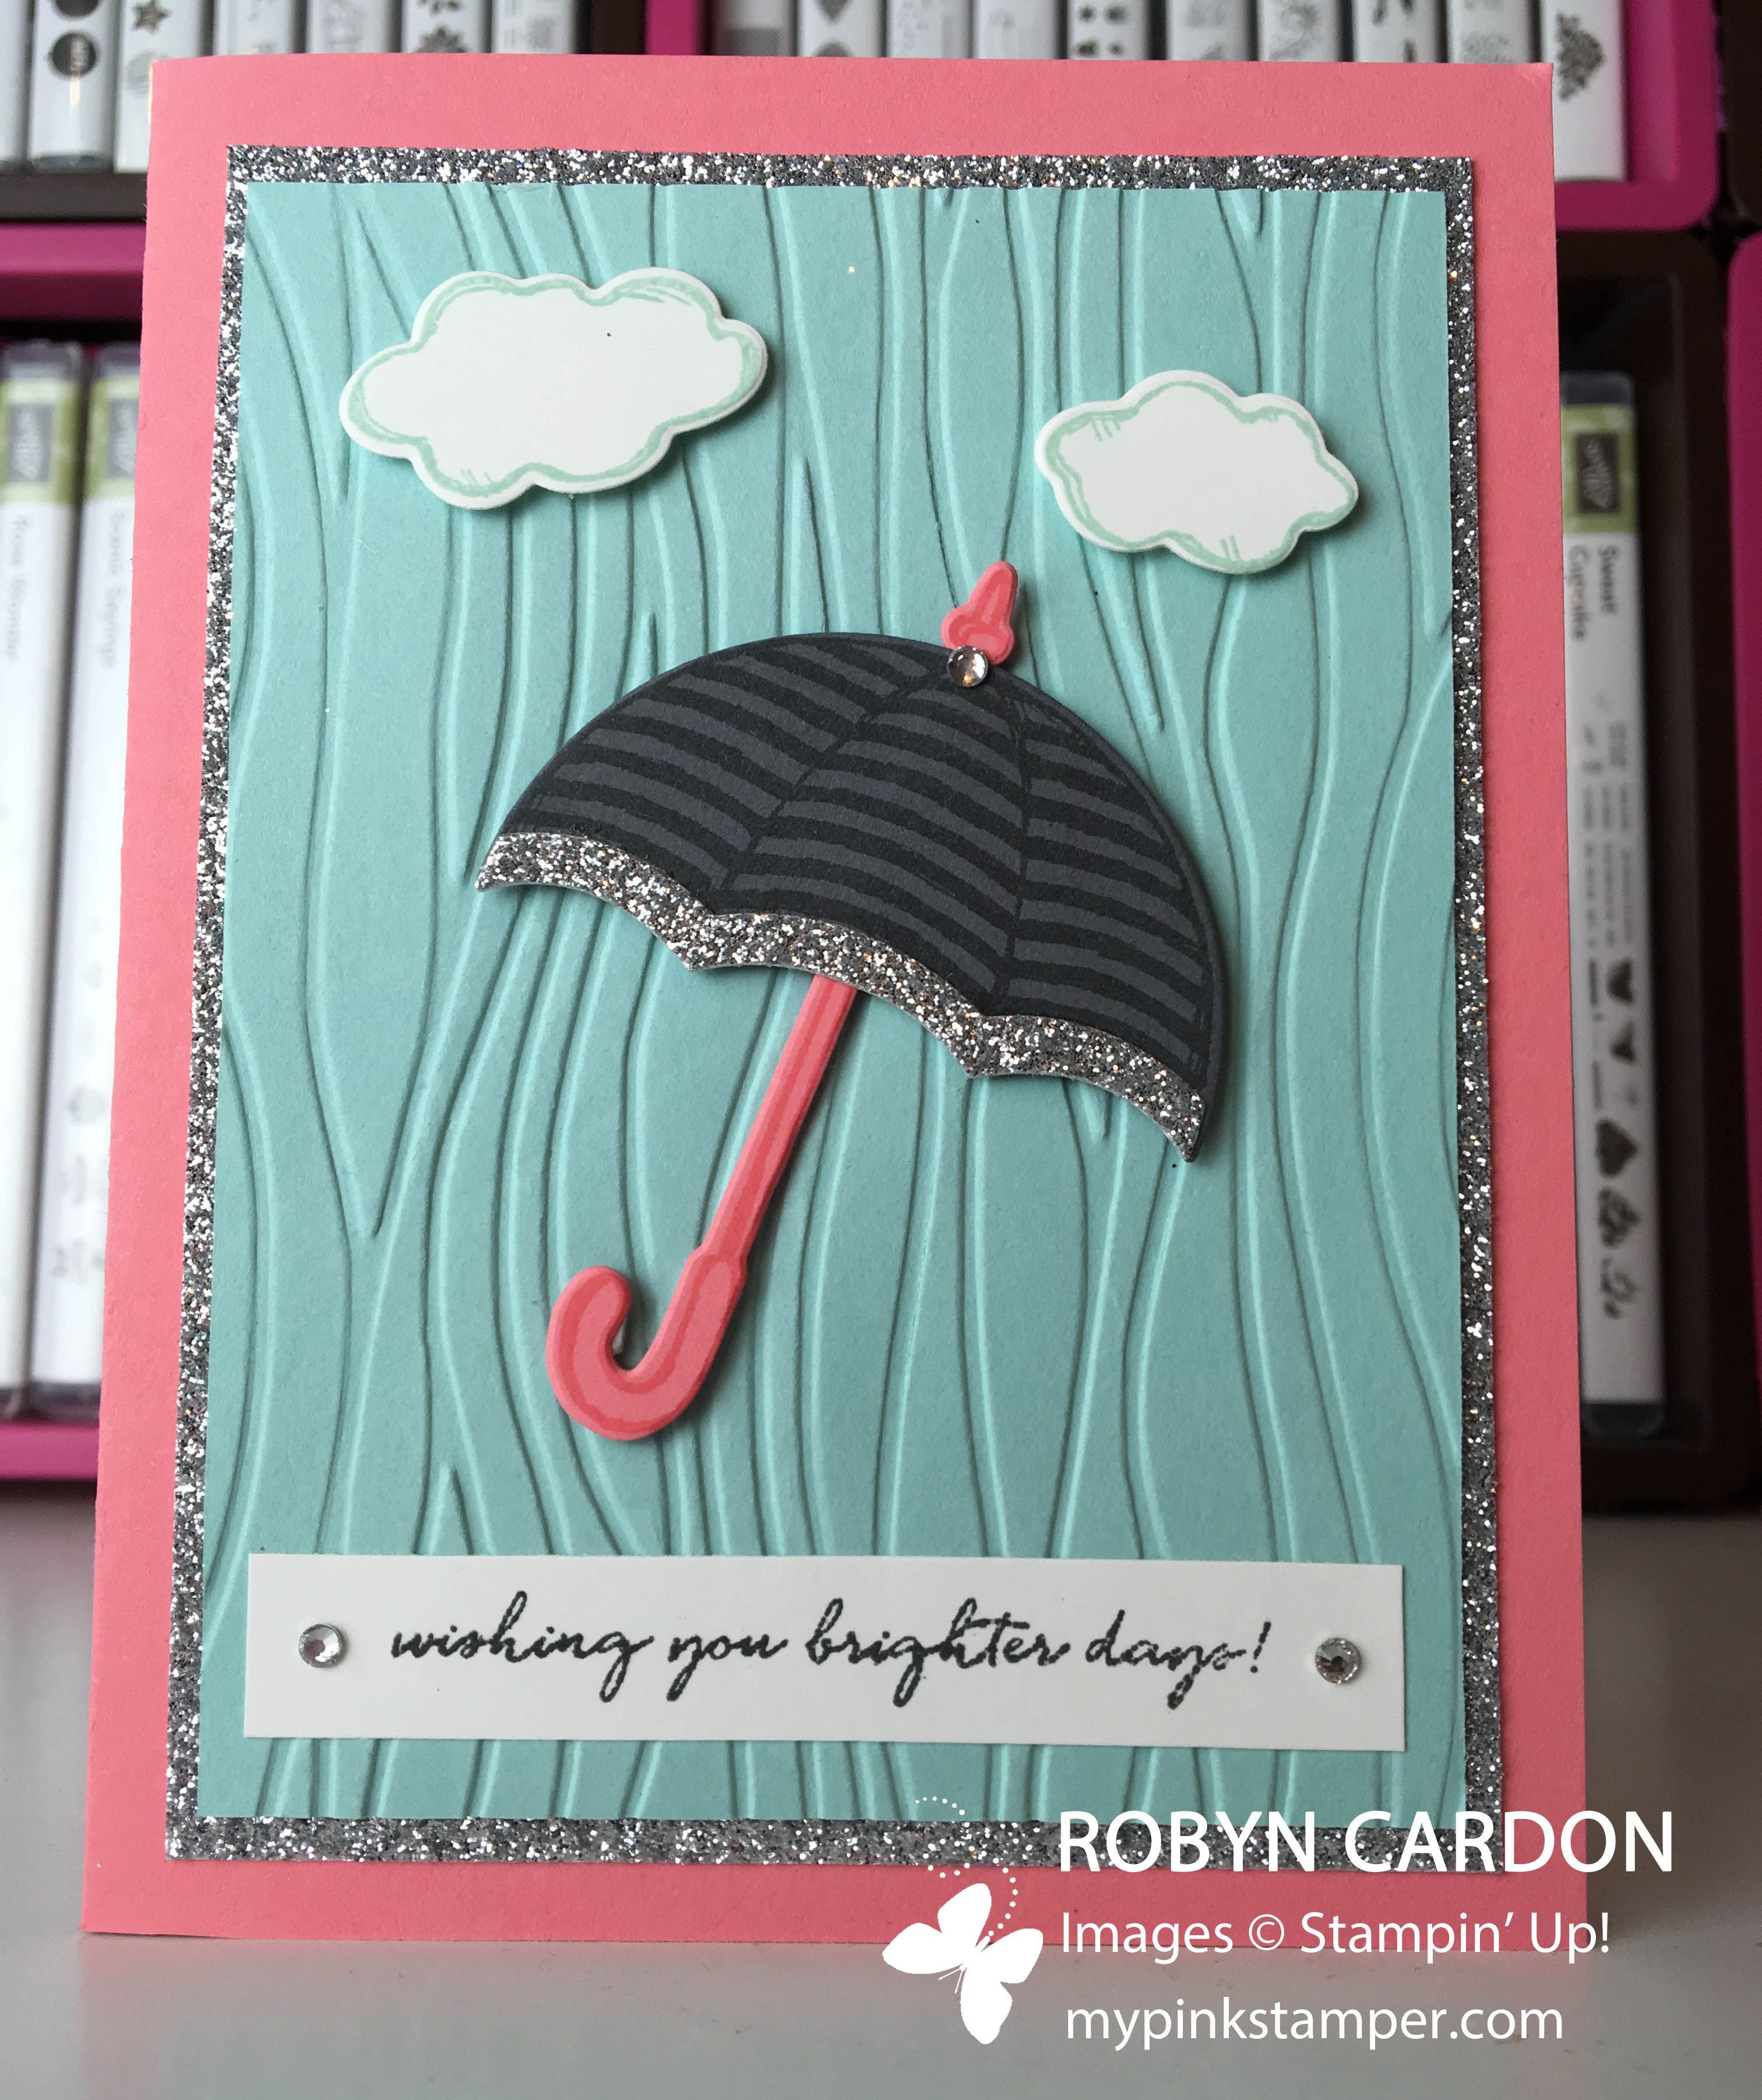 Day 9 & 10 – A Card a Day in May Giveaways & Winner!